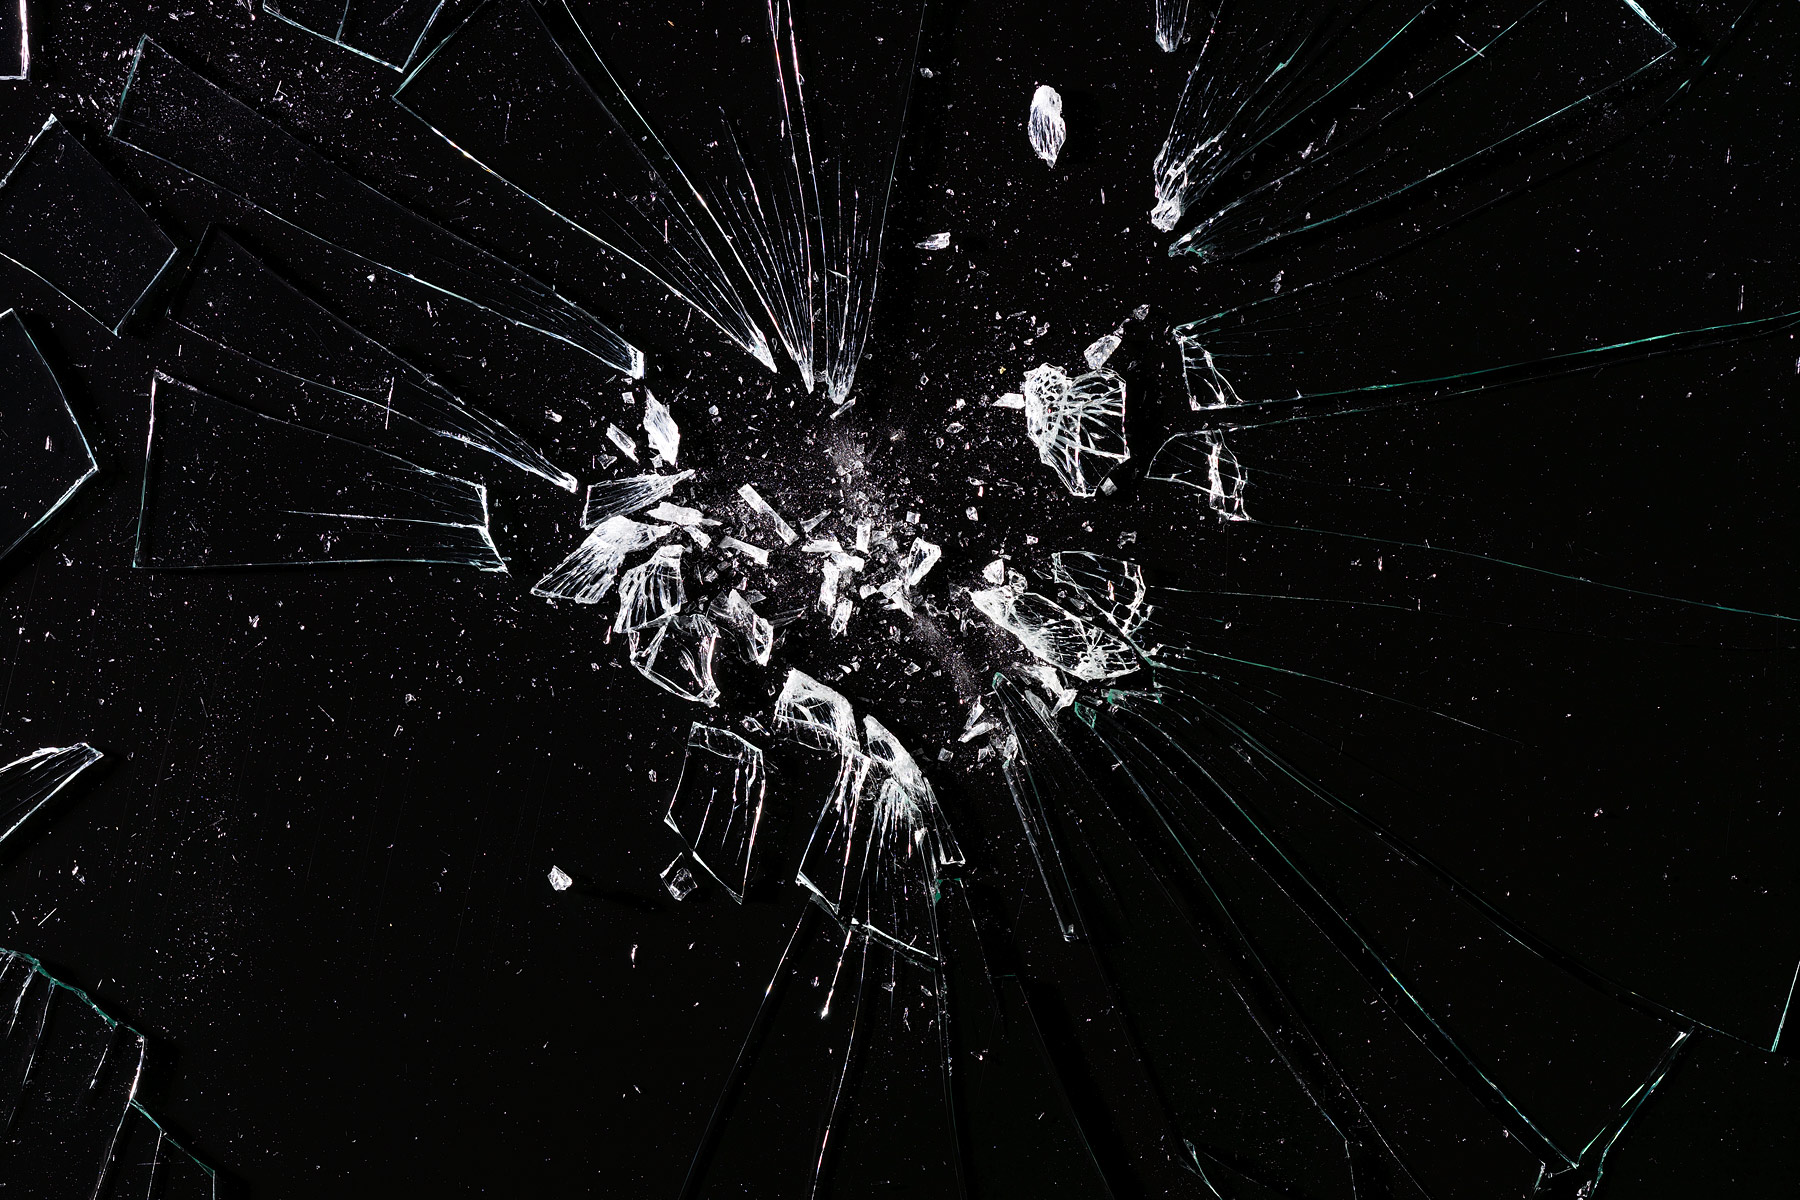 Broken_glass_1